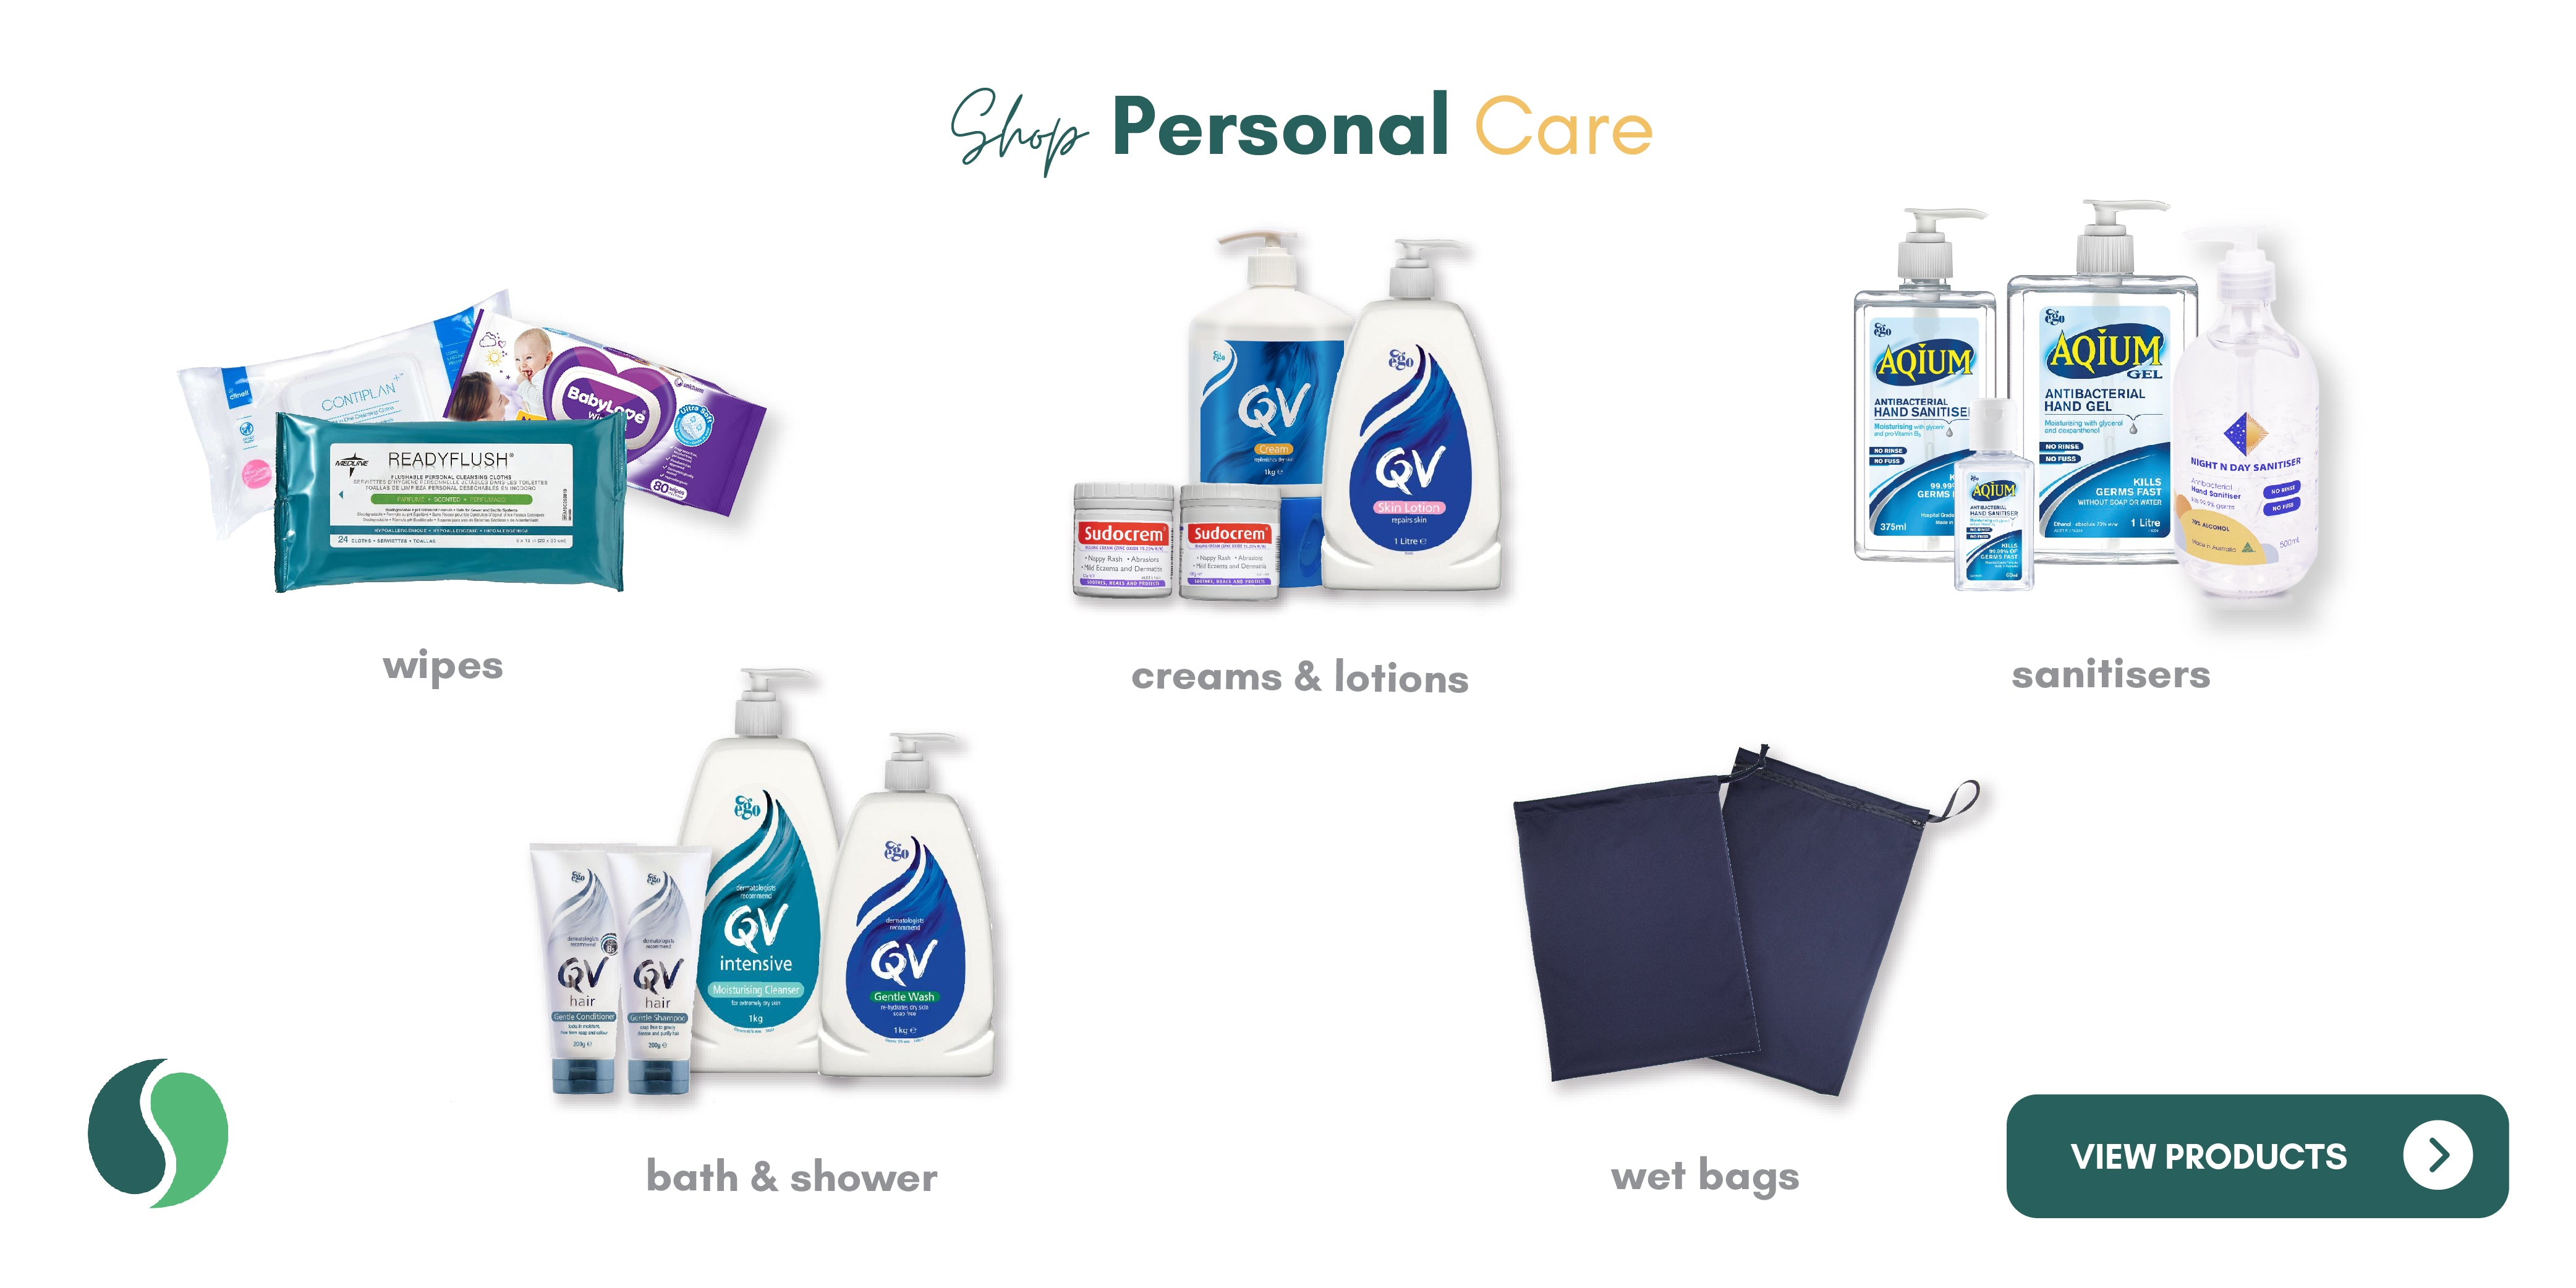 Shop Personal Care - Incontinence Products